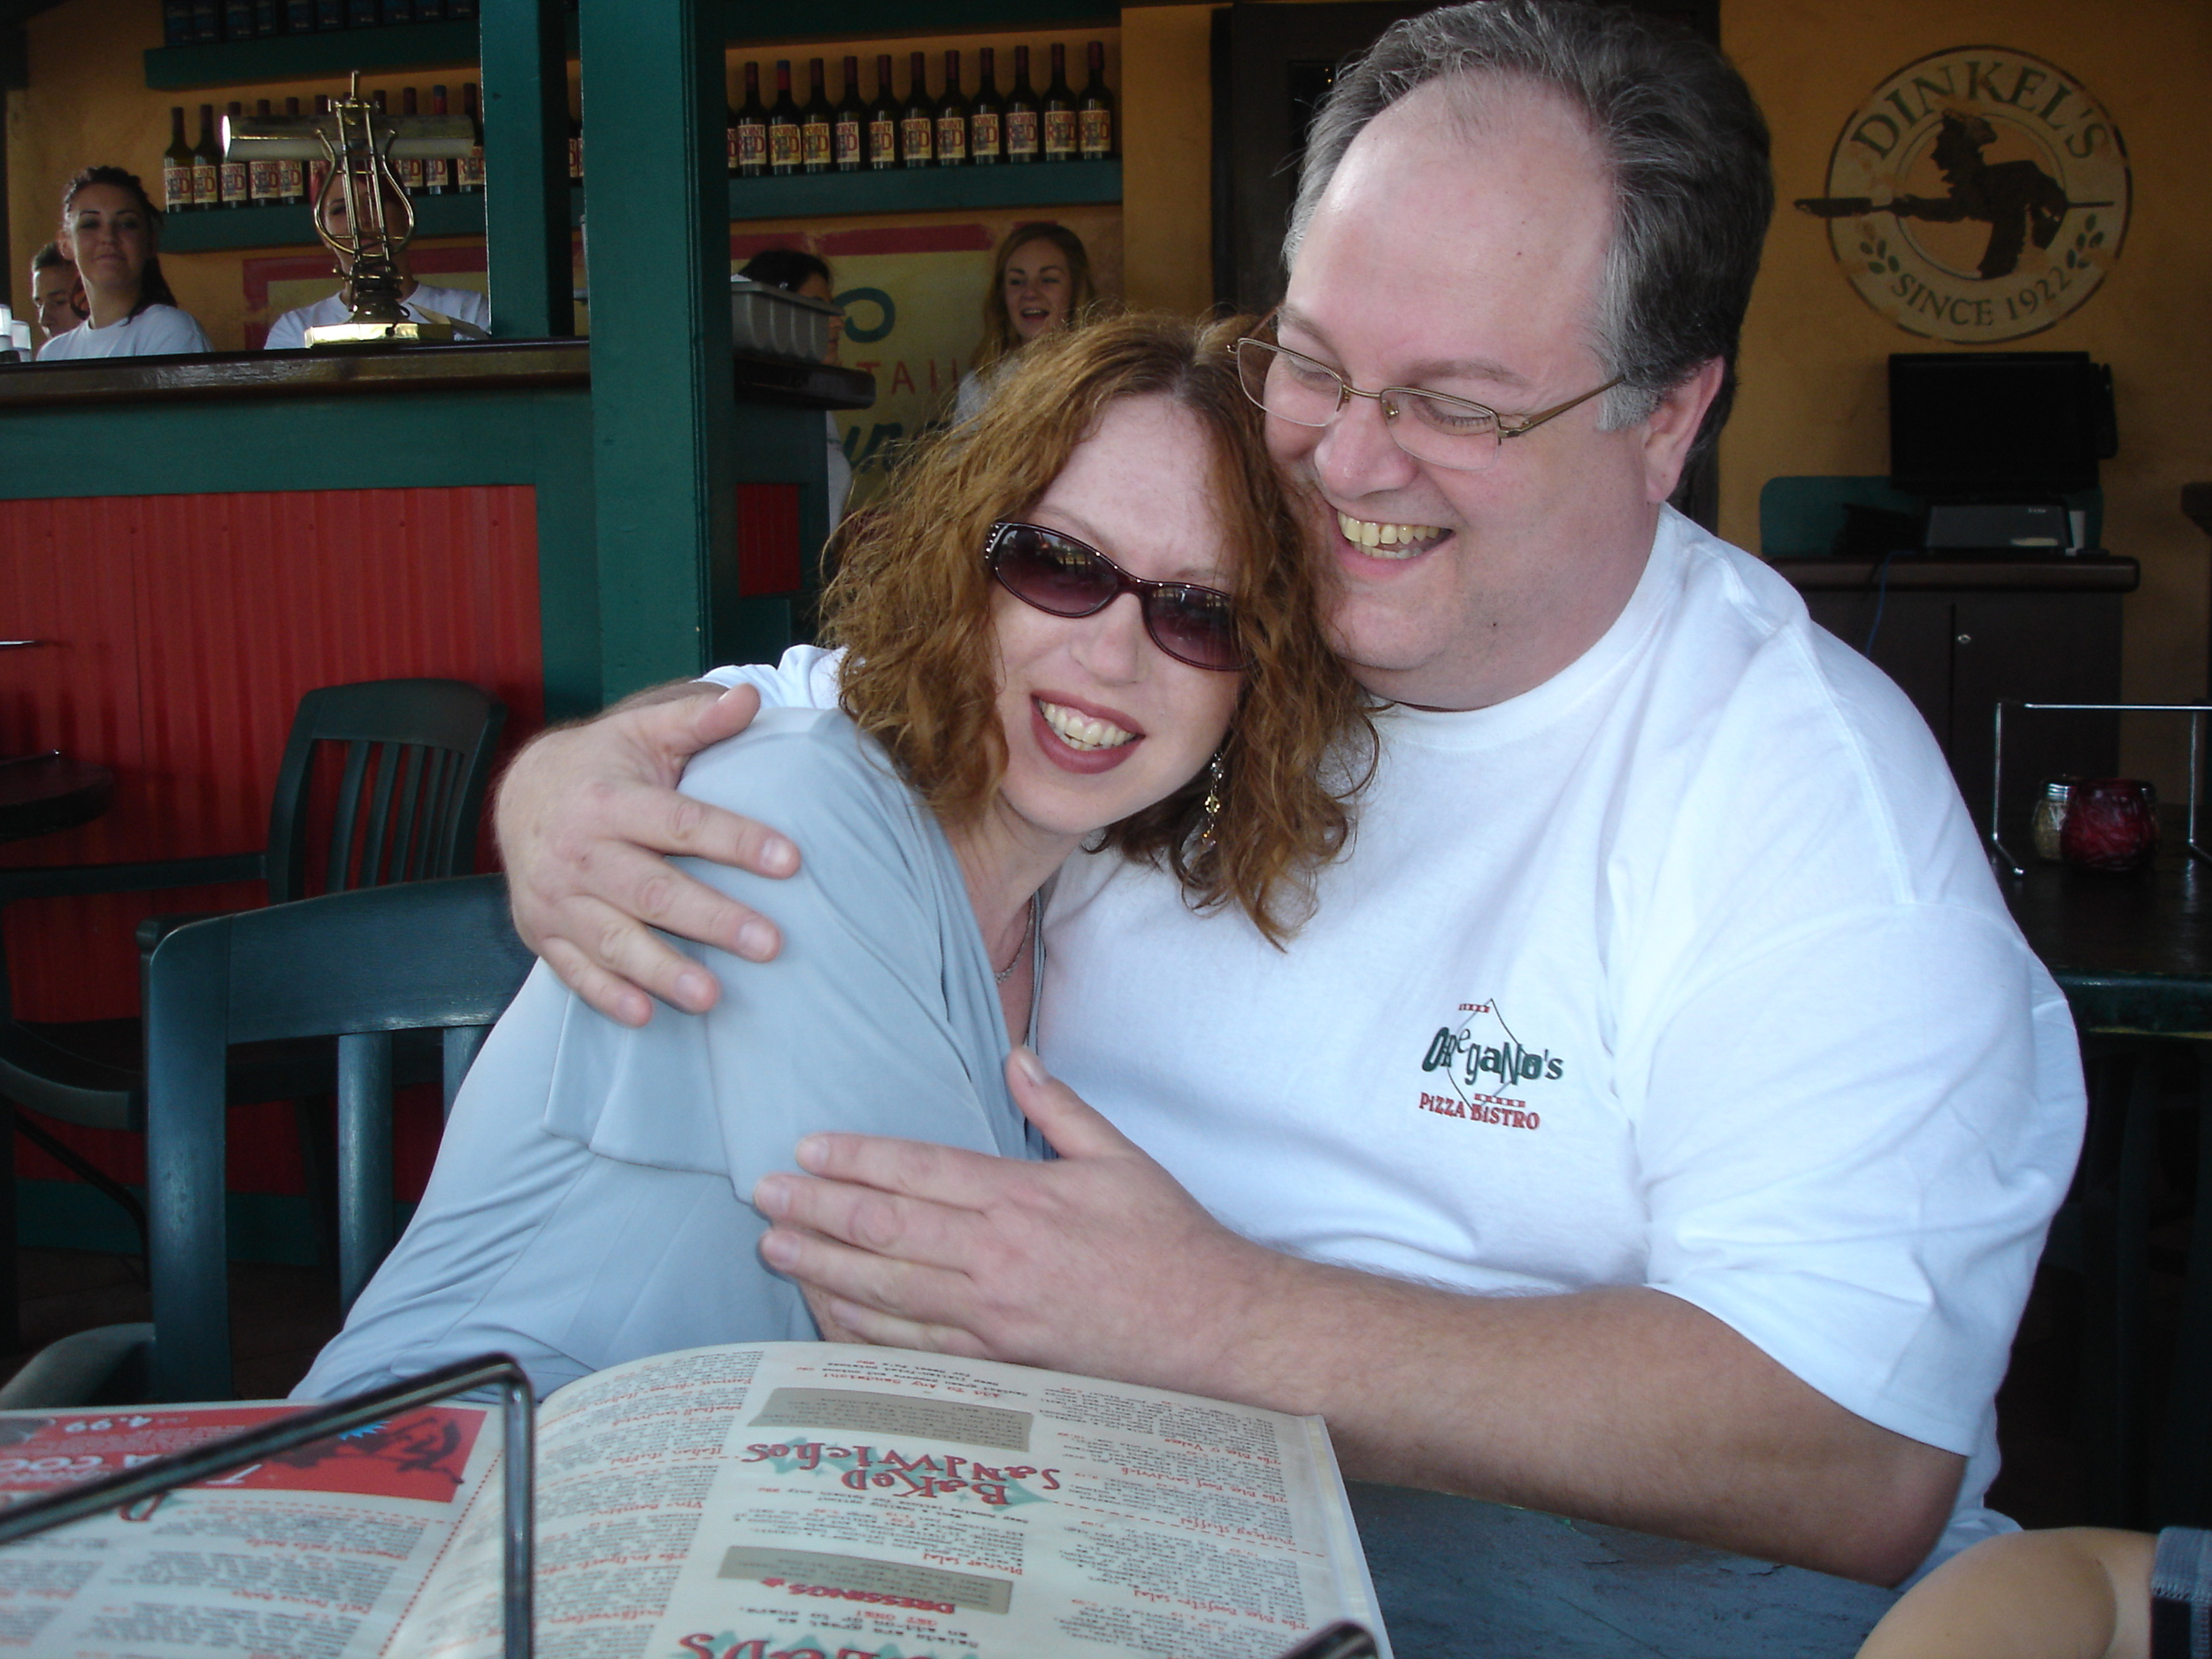 Dan Proposed & Betsy accepted! in Sept '12              At Oregano's Restaurant in Arizona